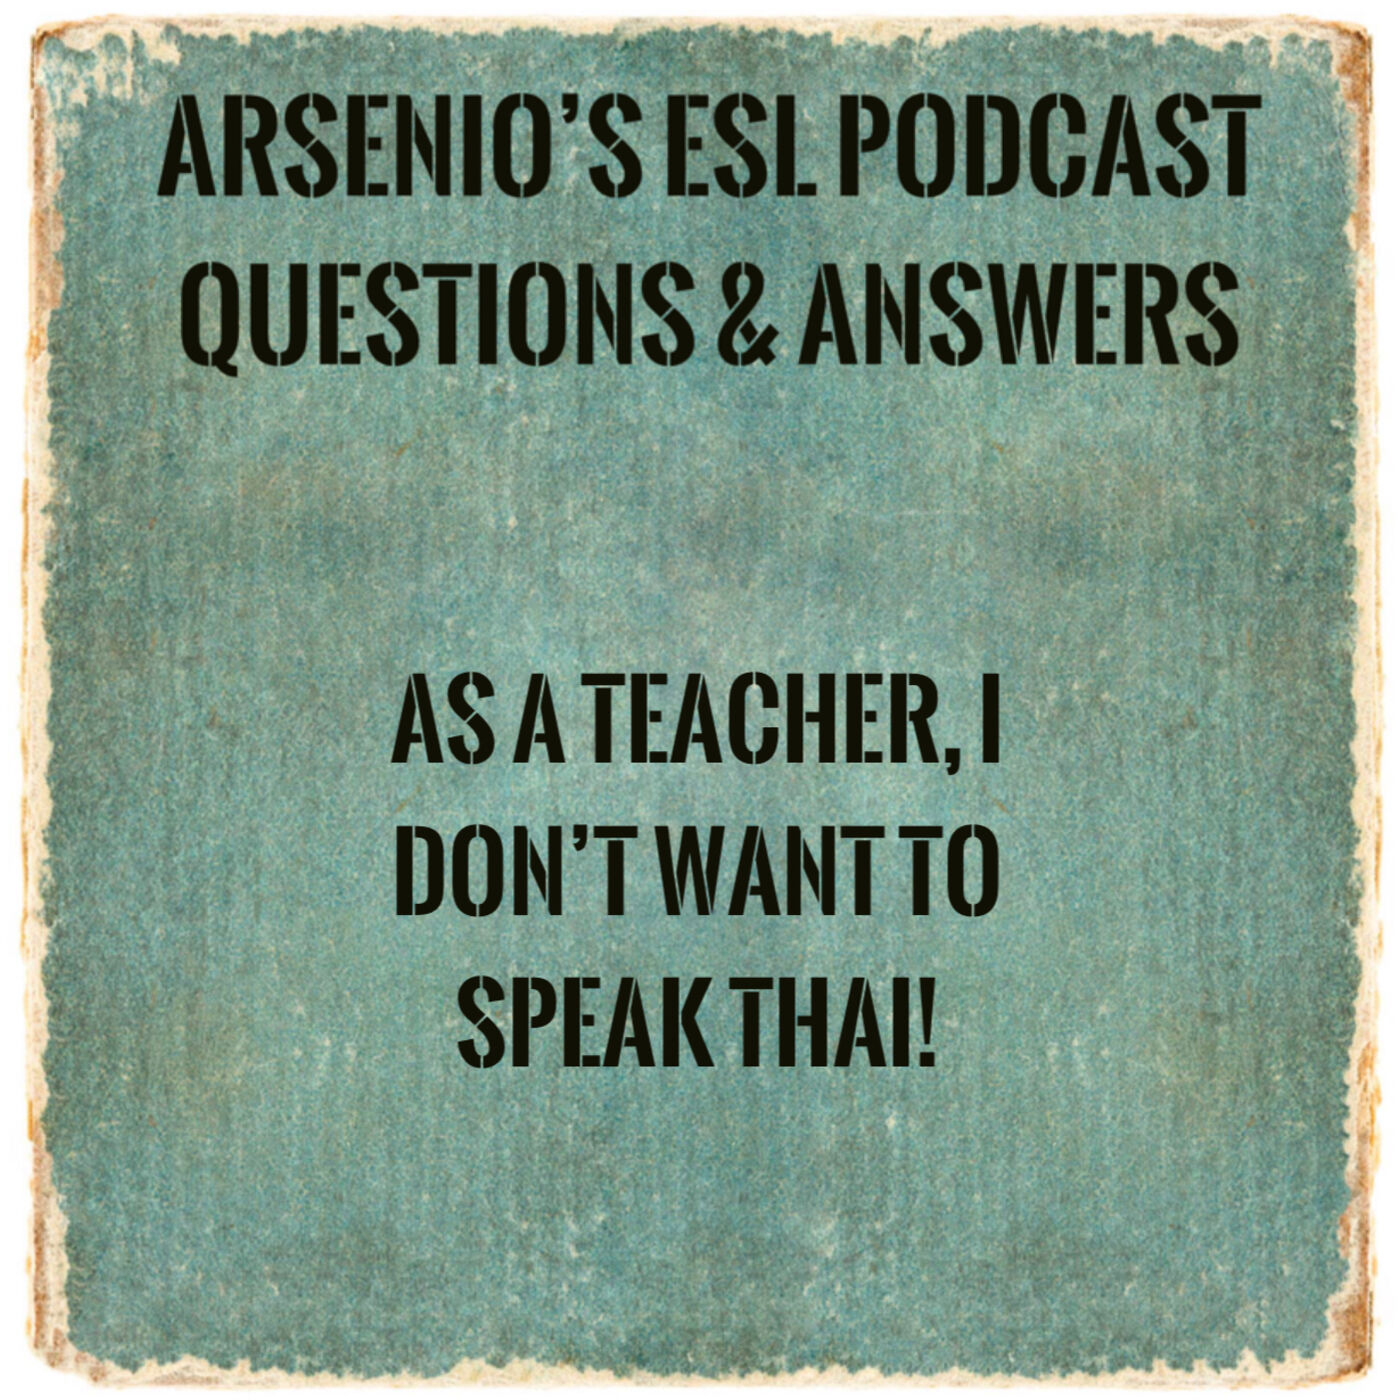 Arsenio's ESL Podcast: Season 4 - Episode 87 - Questions & Answers - No, I Won't Learn Thai!